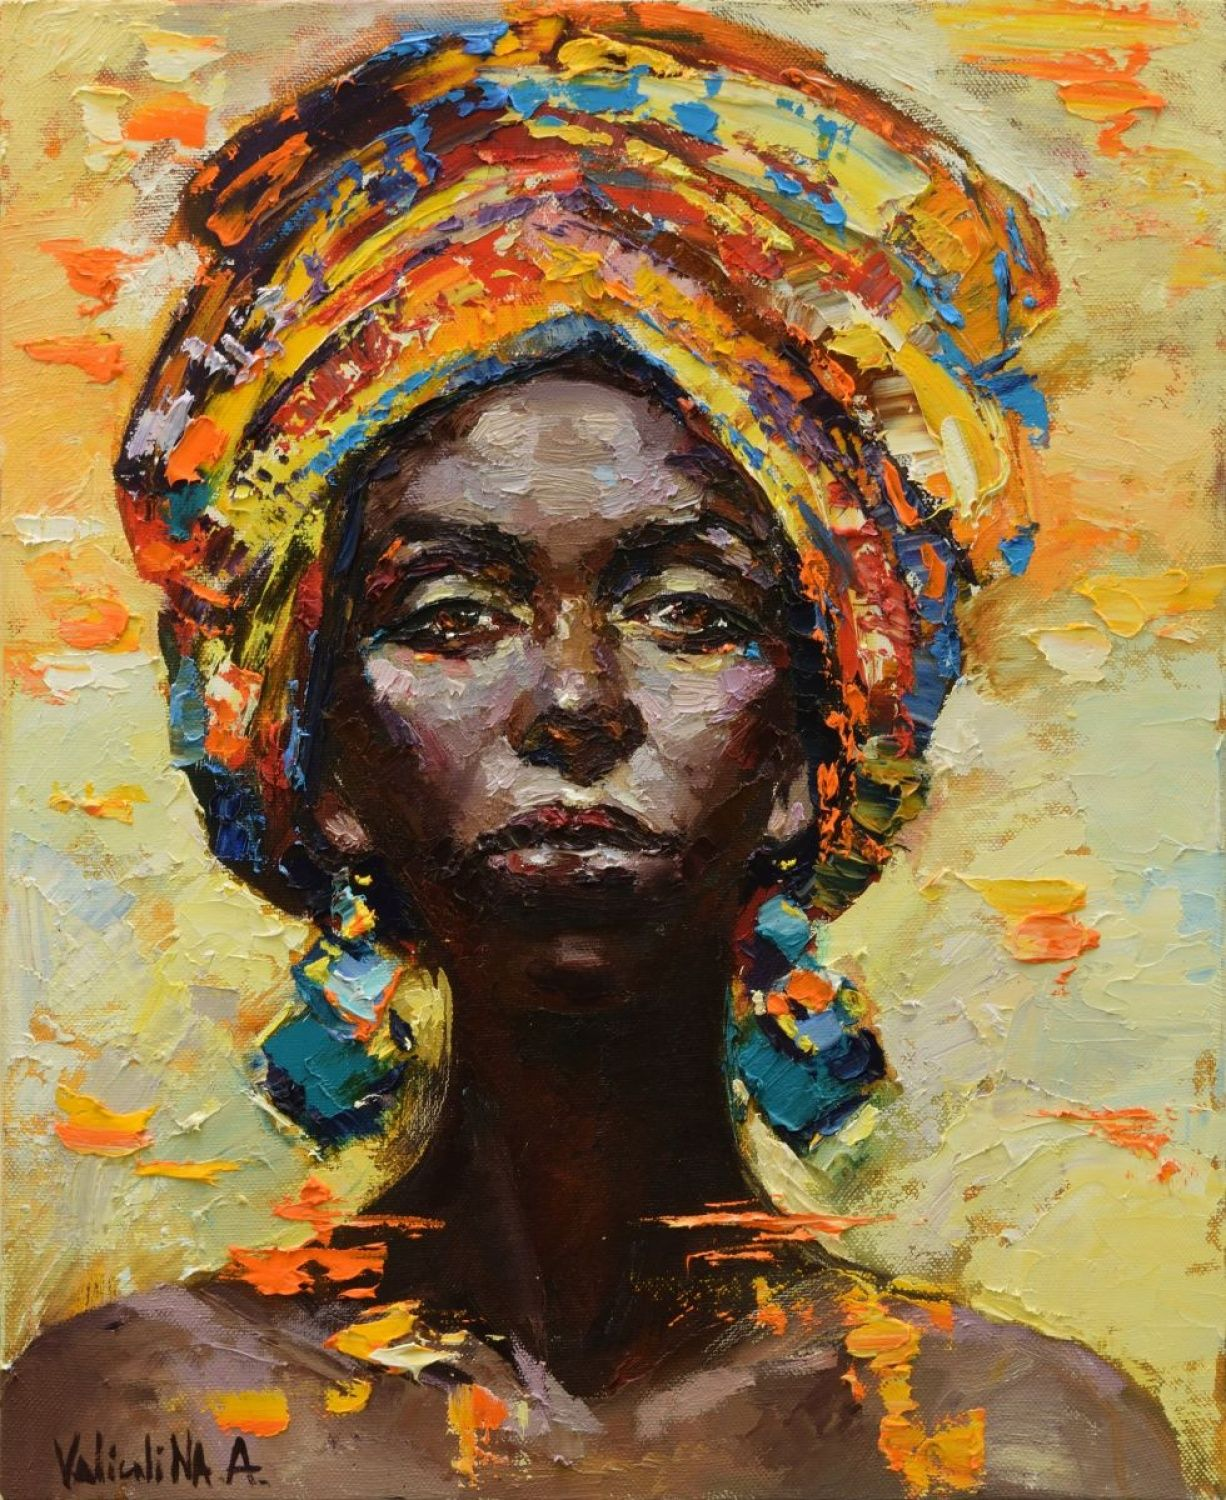 African Woman Portrait Painting Original Oil Painting 2016